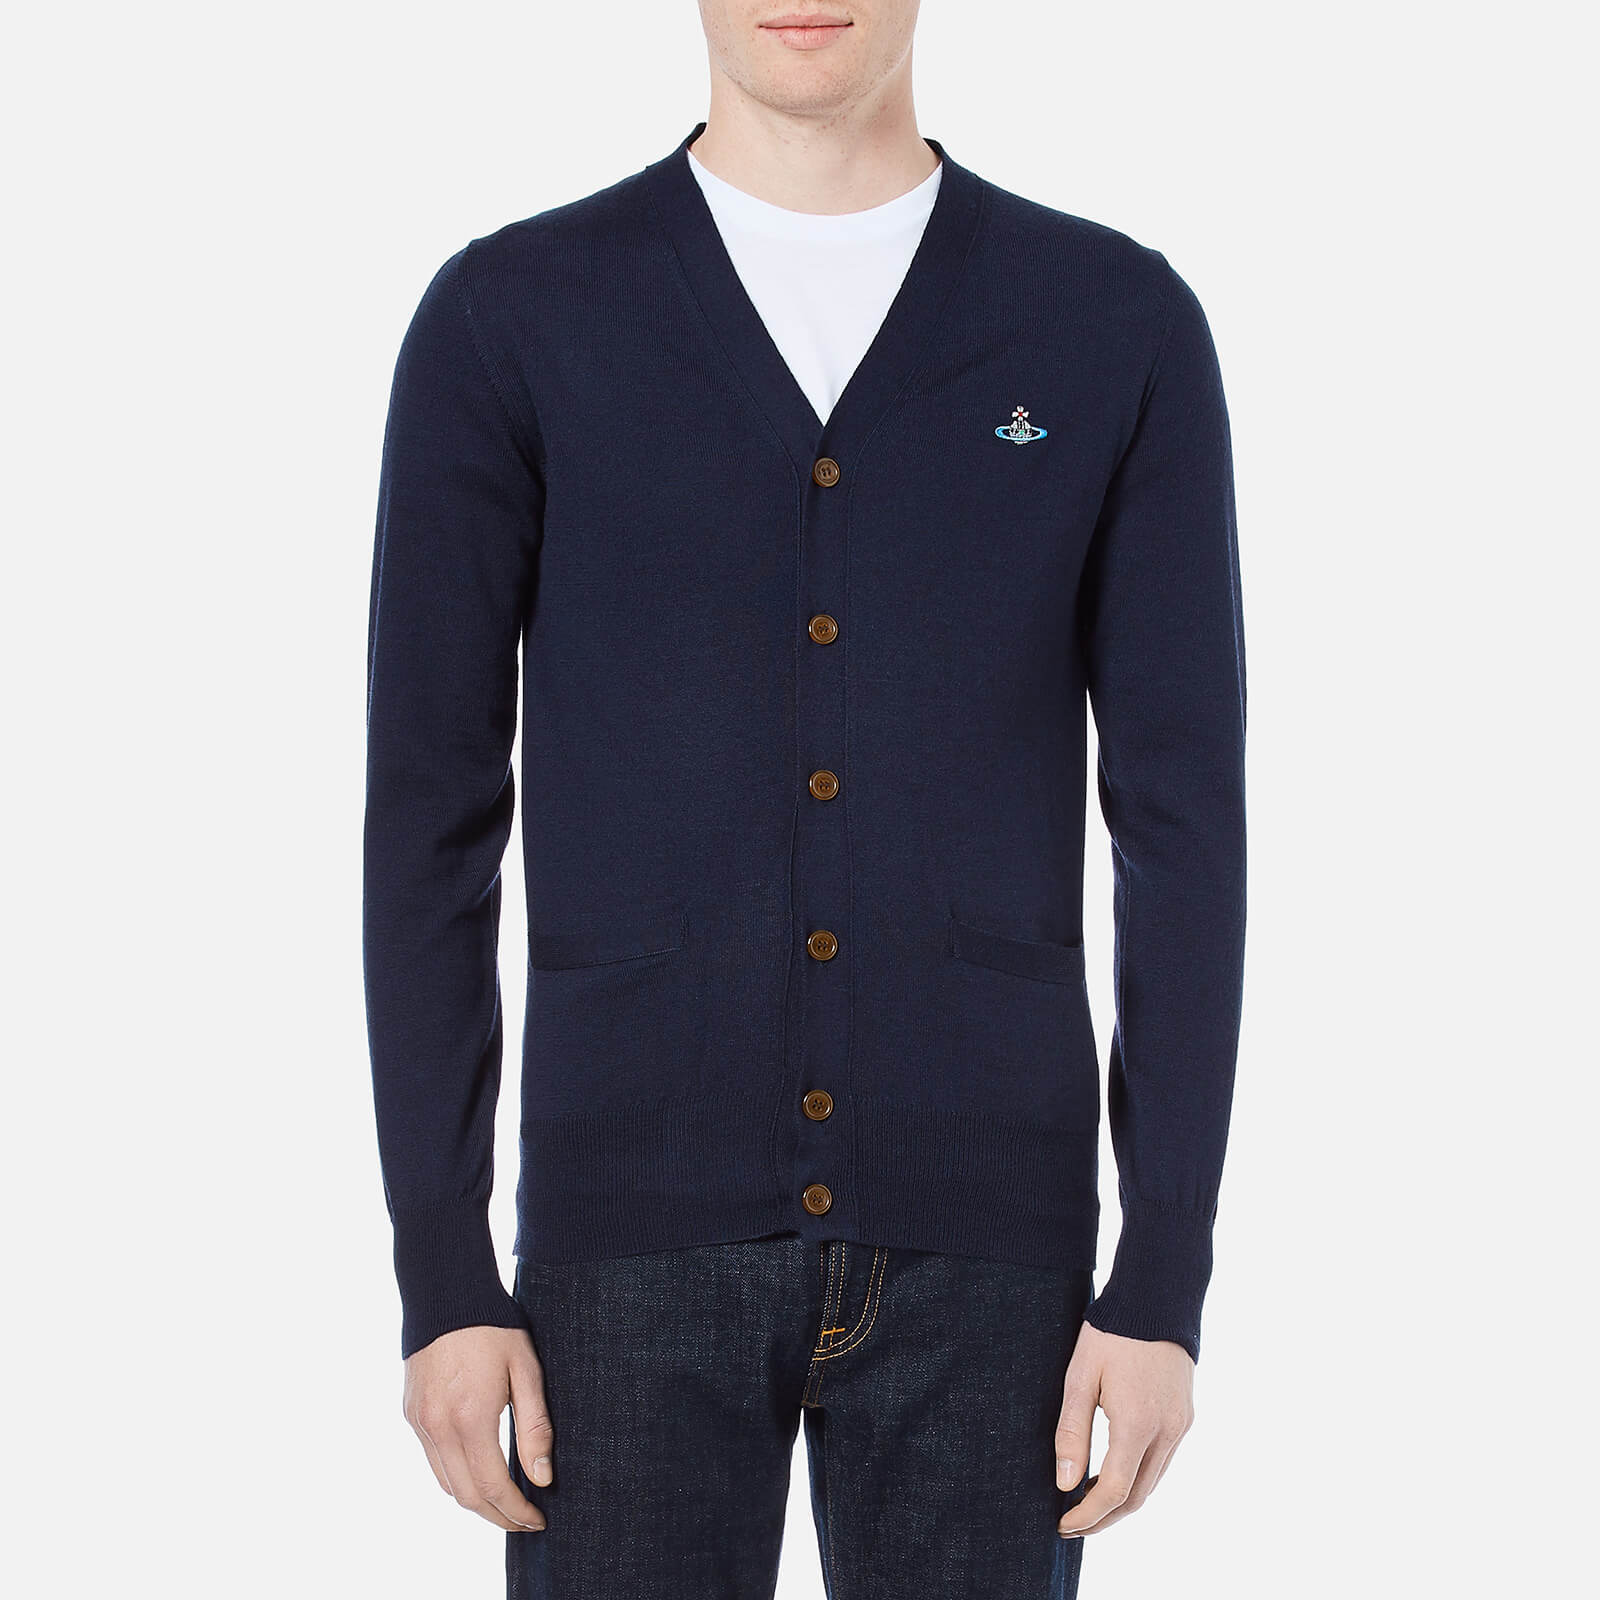 5a8e723be32 Vivienne Westwood Men's Classic Knitted Cardigan - Navy